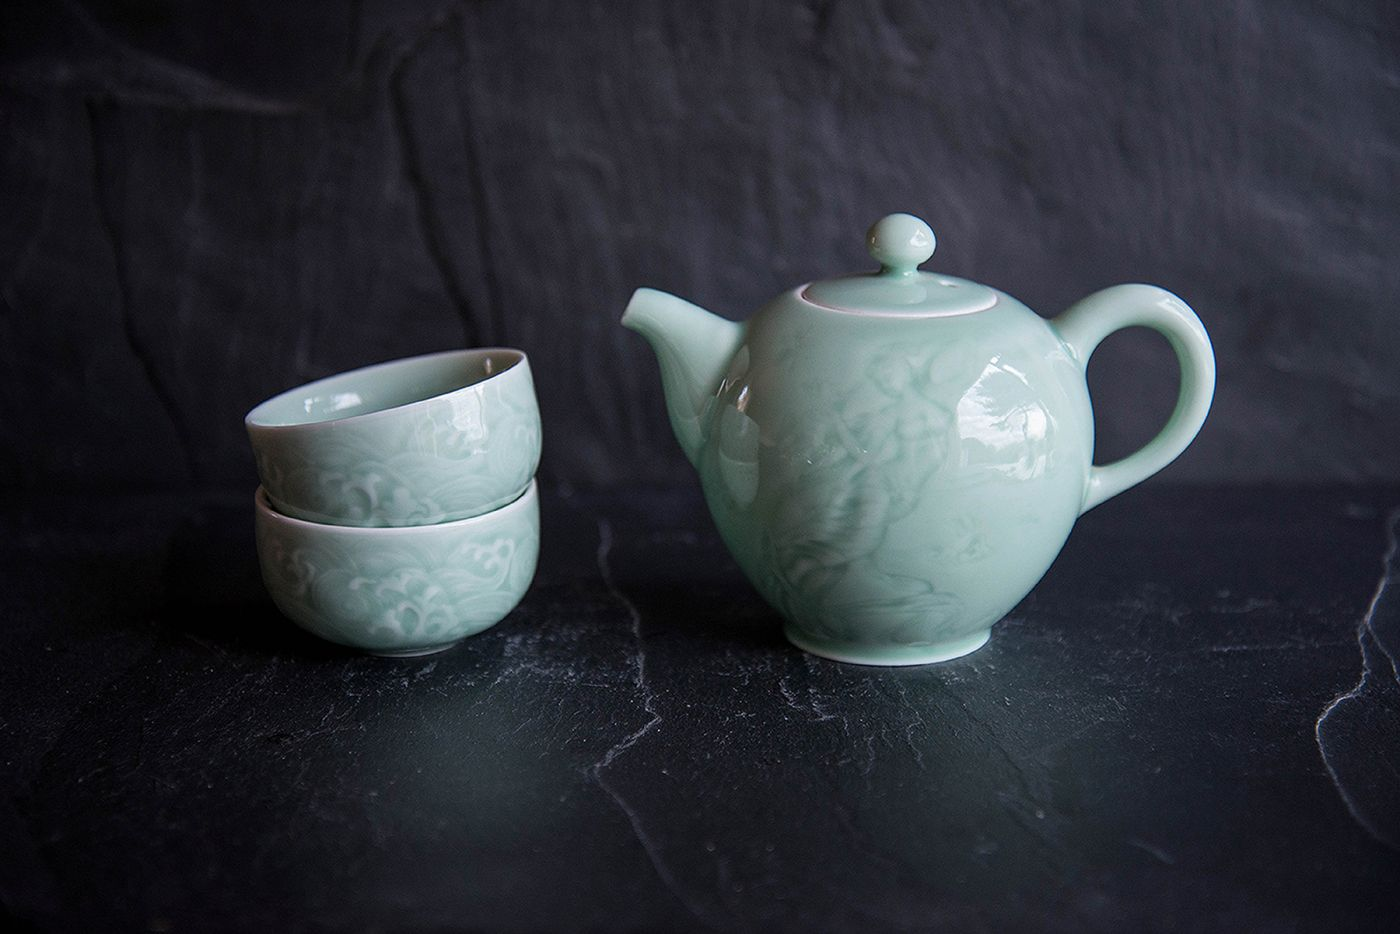 Hashi Turquoise Porcelain Teapot and 2 Bowls in a Wooden Gift Box